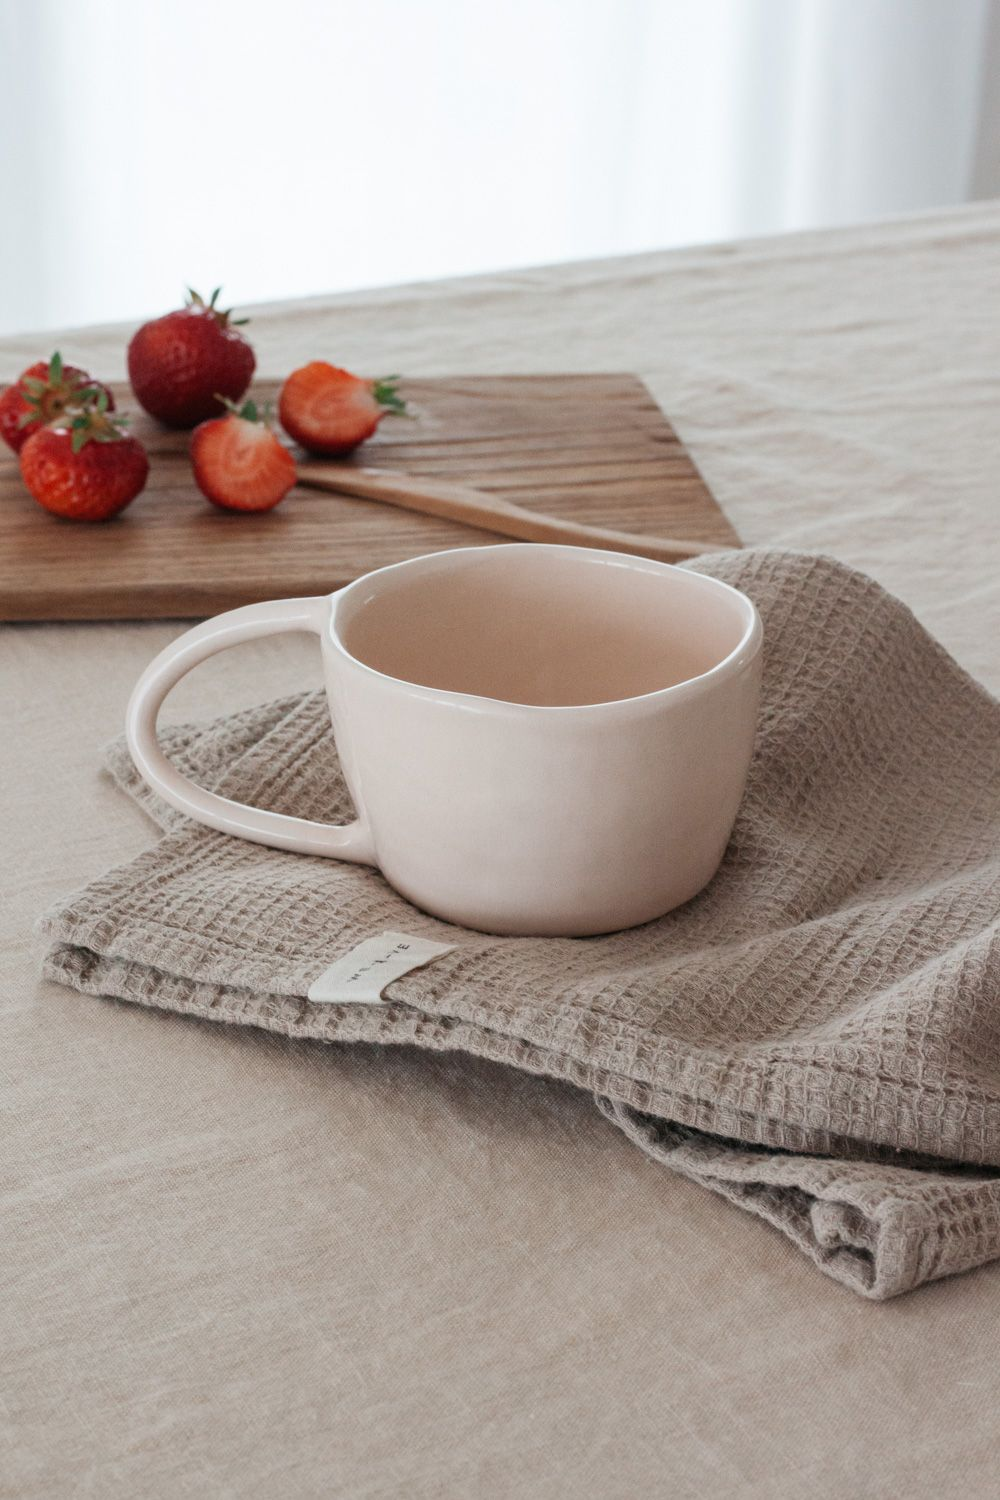 Terra Handmade Ceramic Mug - Light Blush